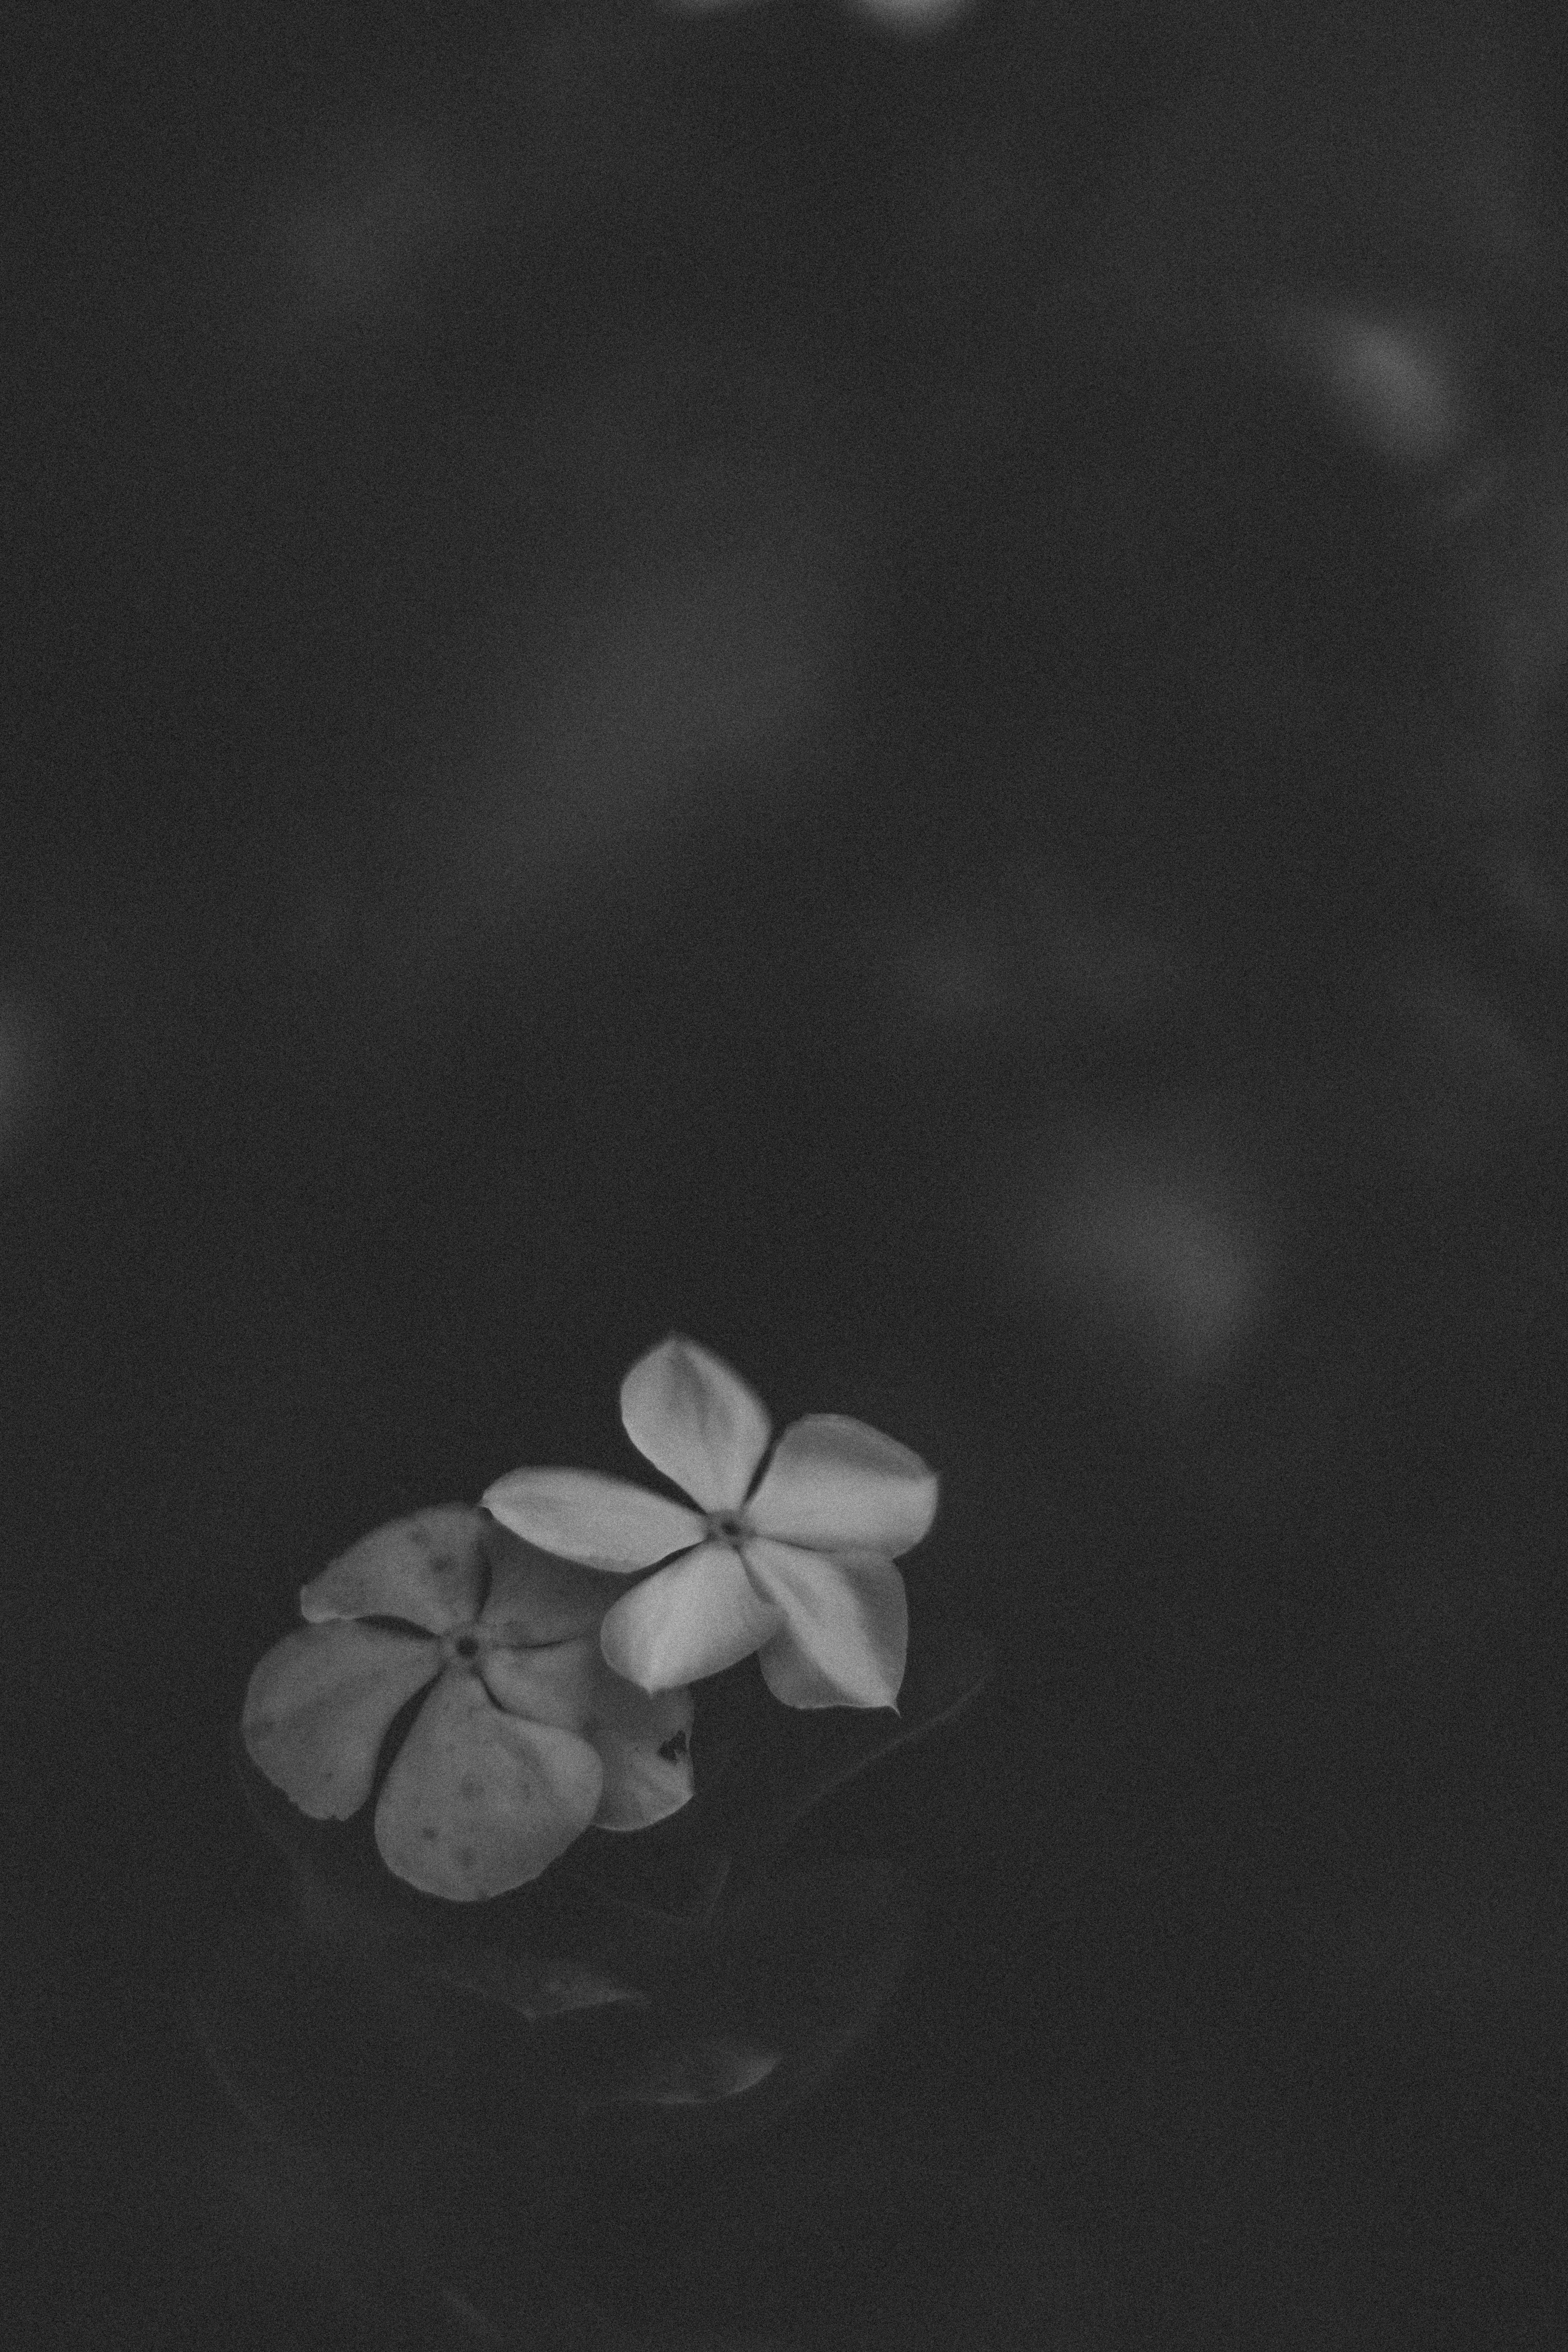 Free stock photo of beautiful flowers, black and white